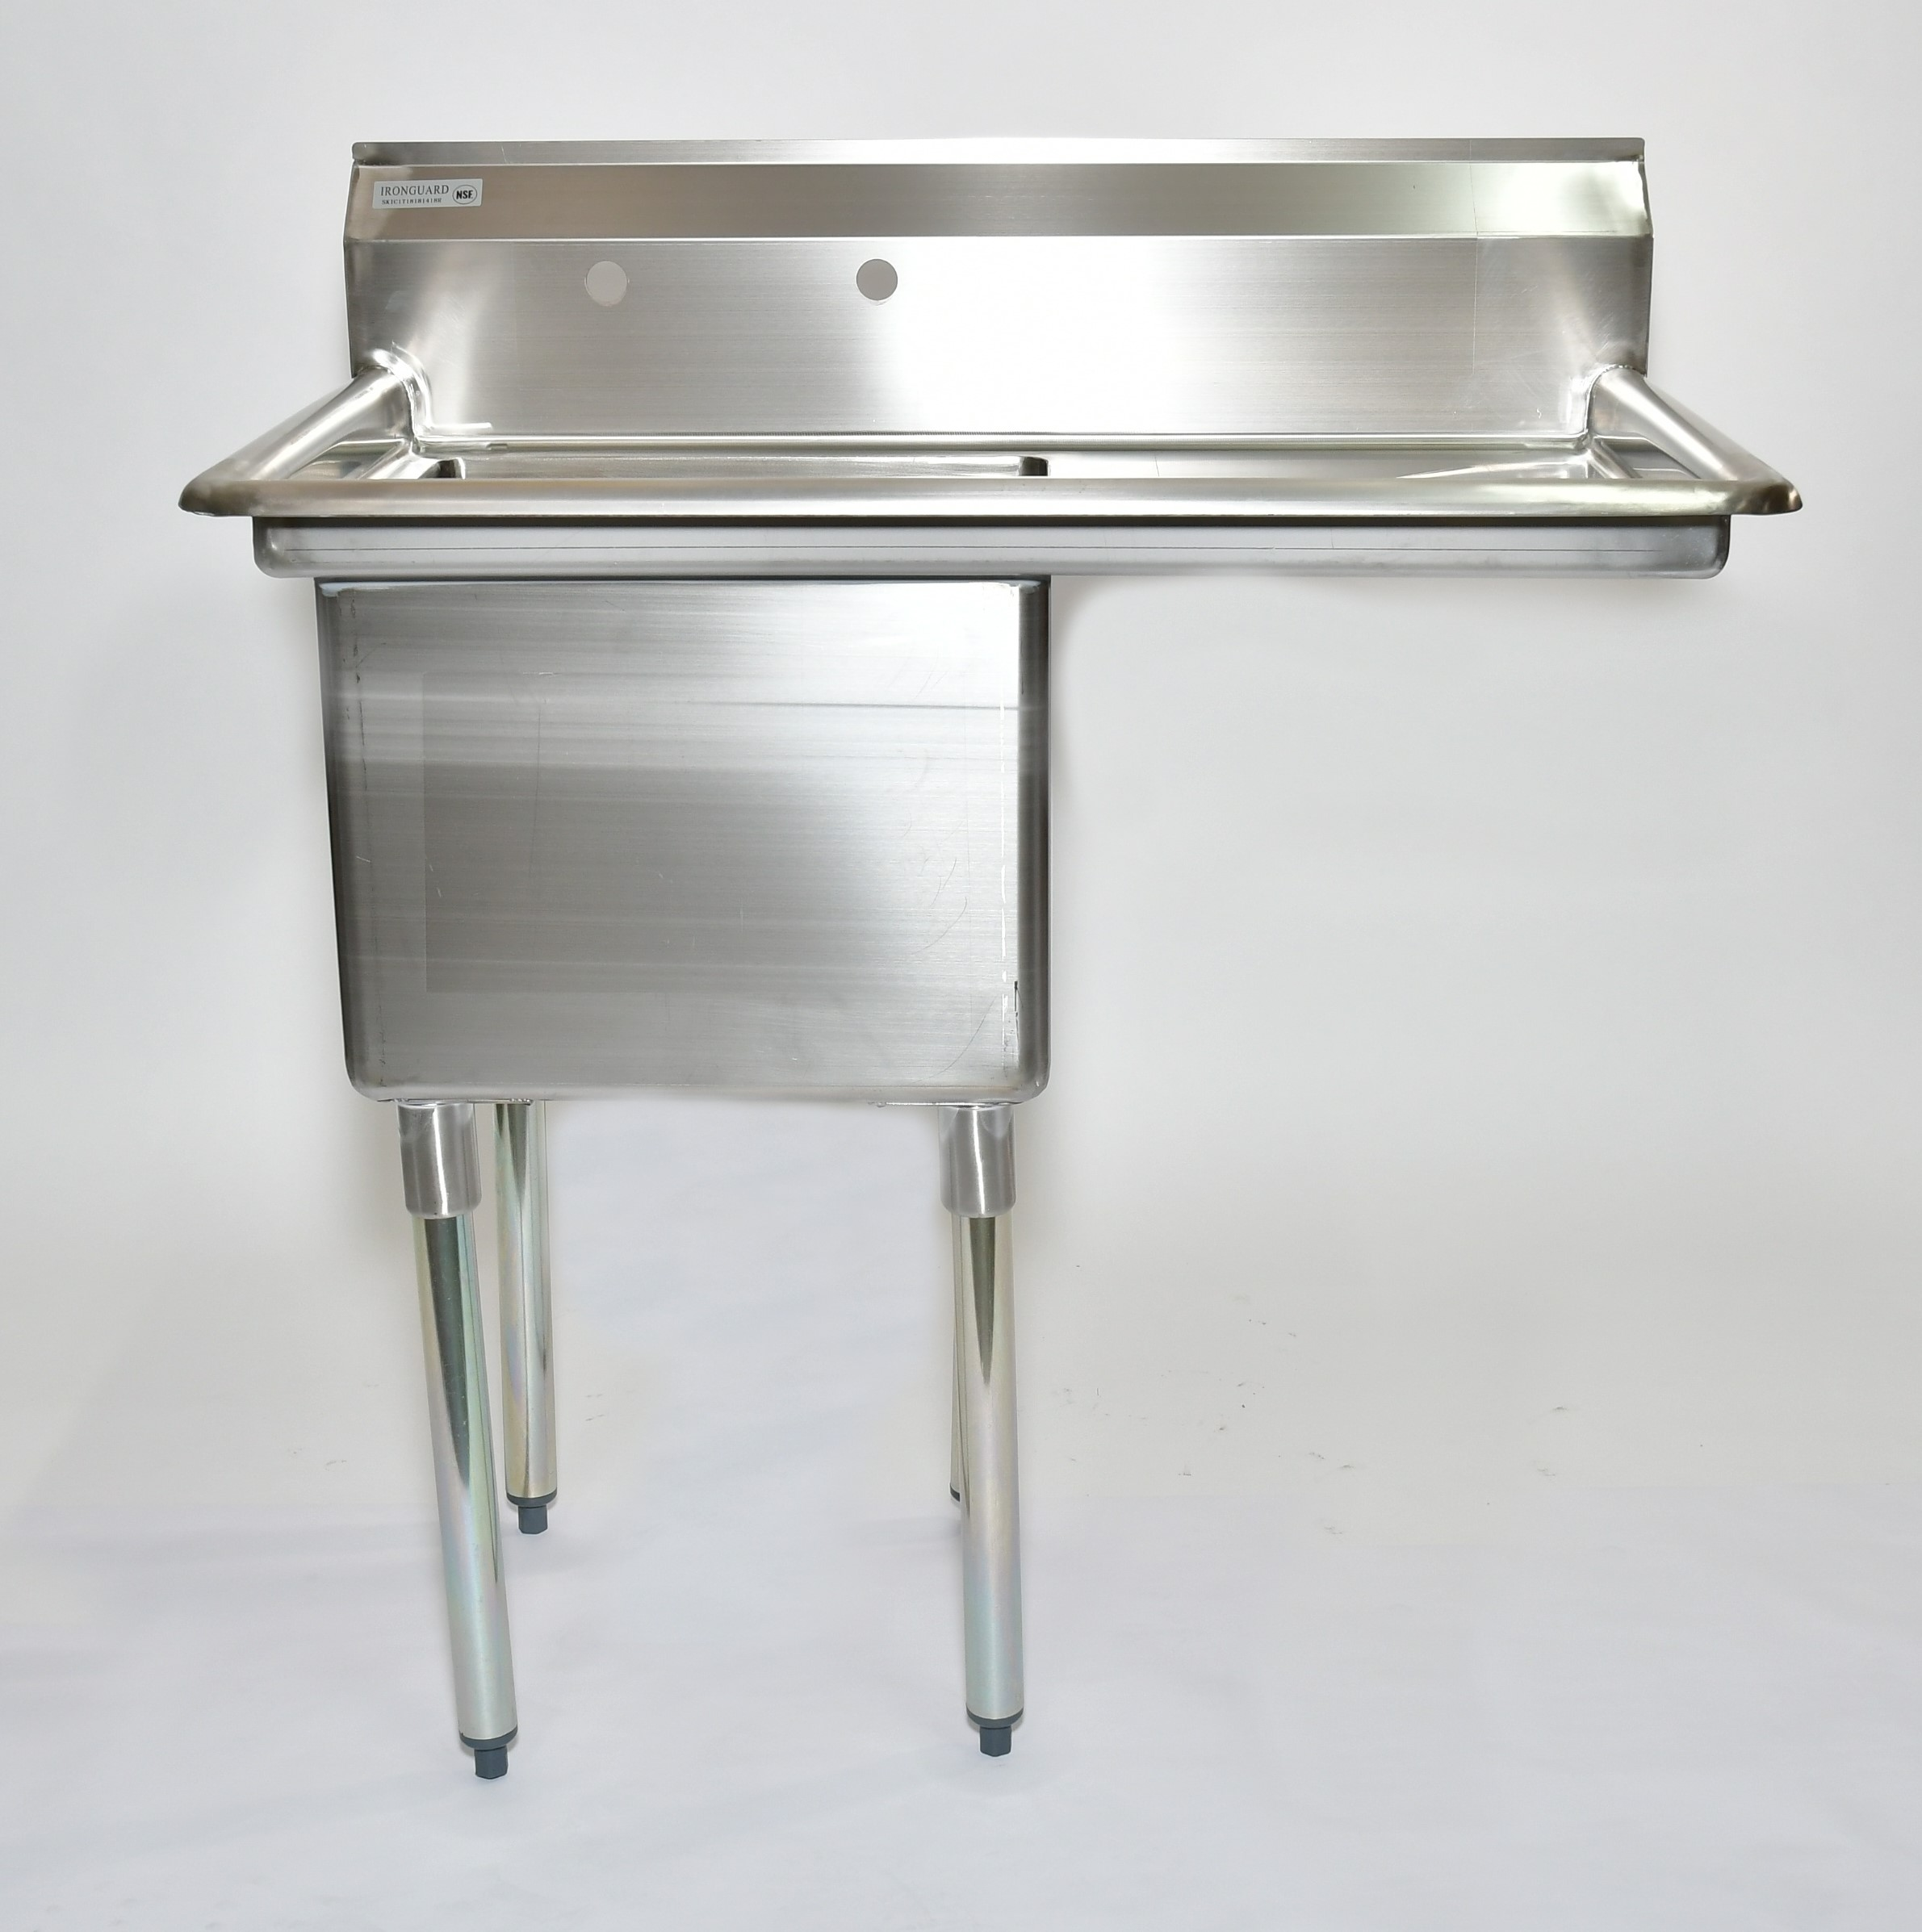 "Iron Guard-Sink 1 Comp 18 X 18 X 14 with 18"""" RDB 304 Top Galv Legs 